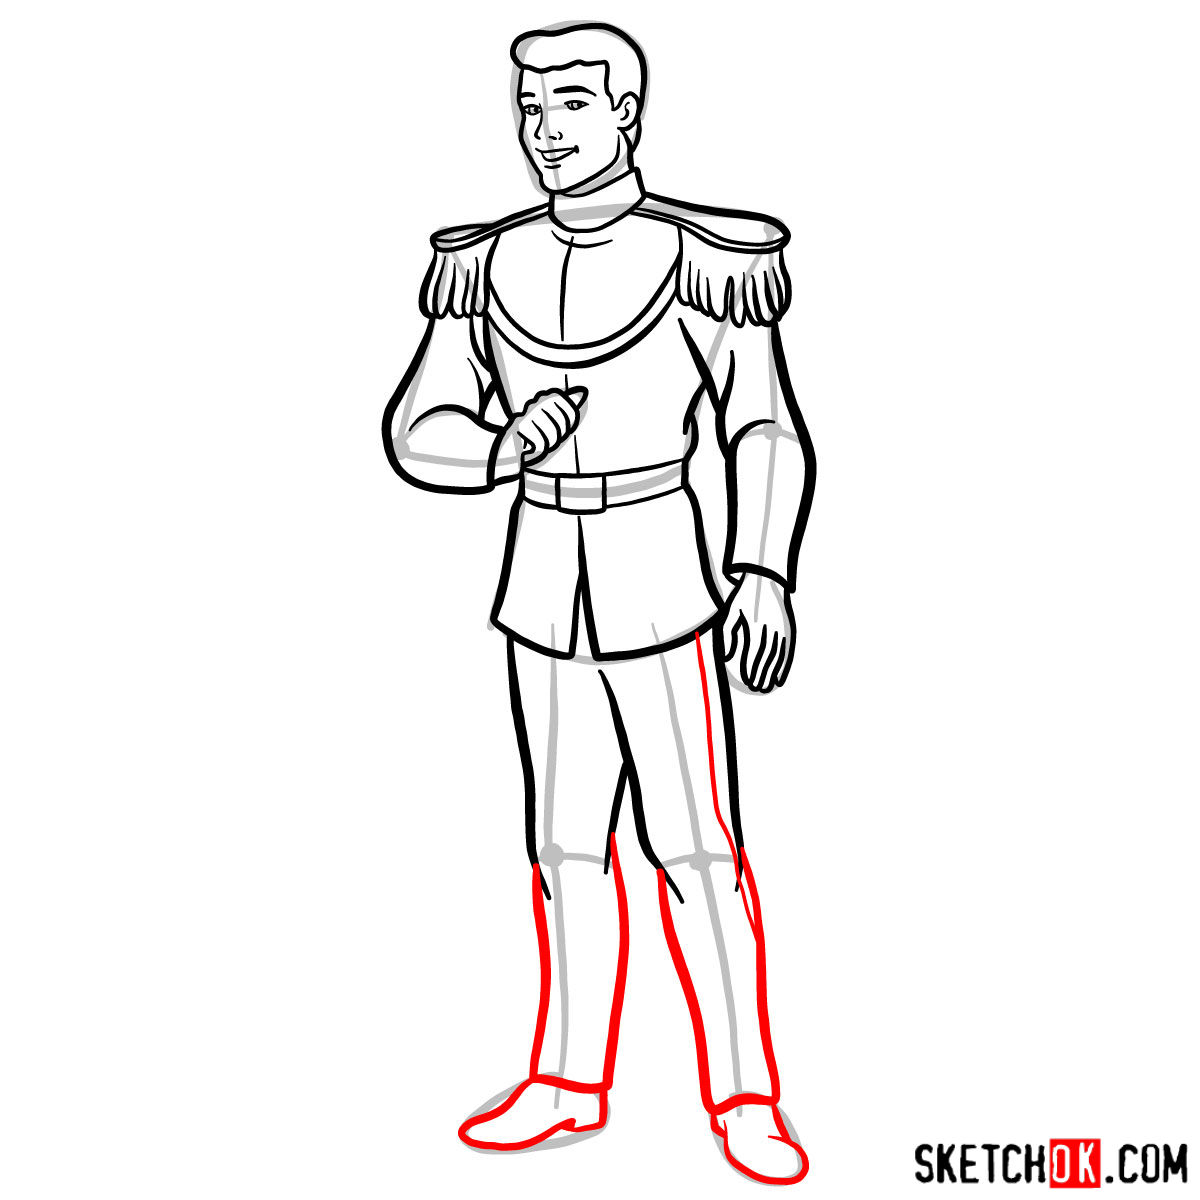 How to draw Prince Charming - step 11